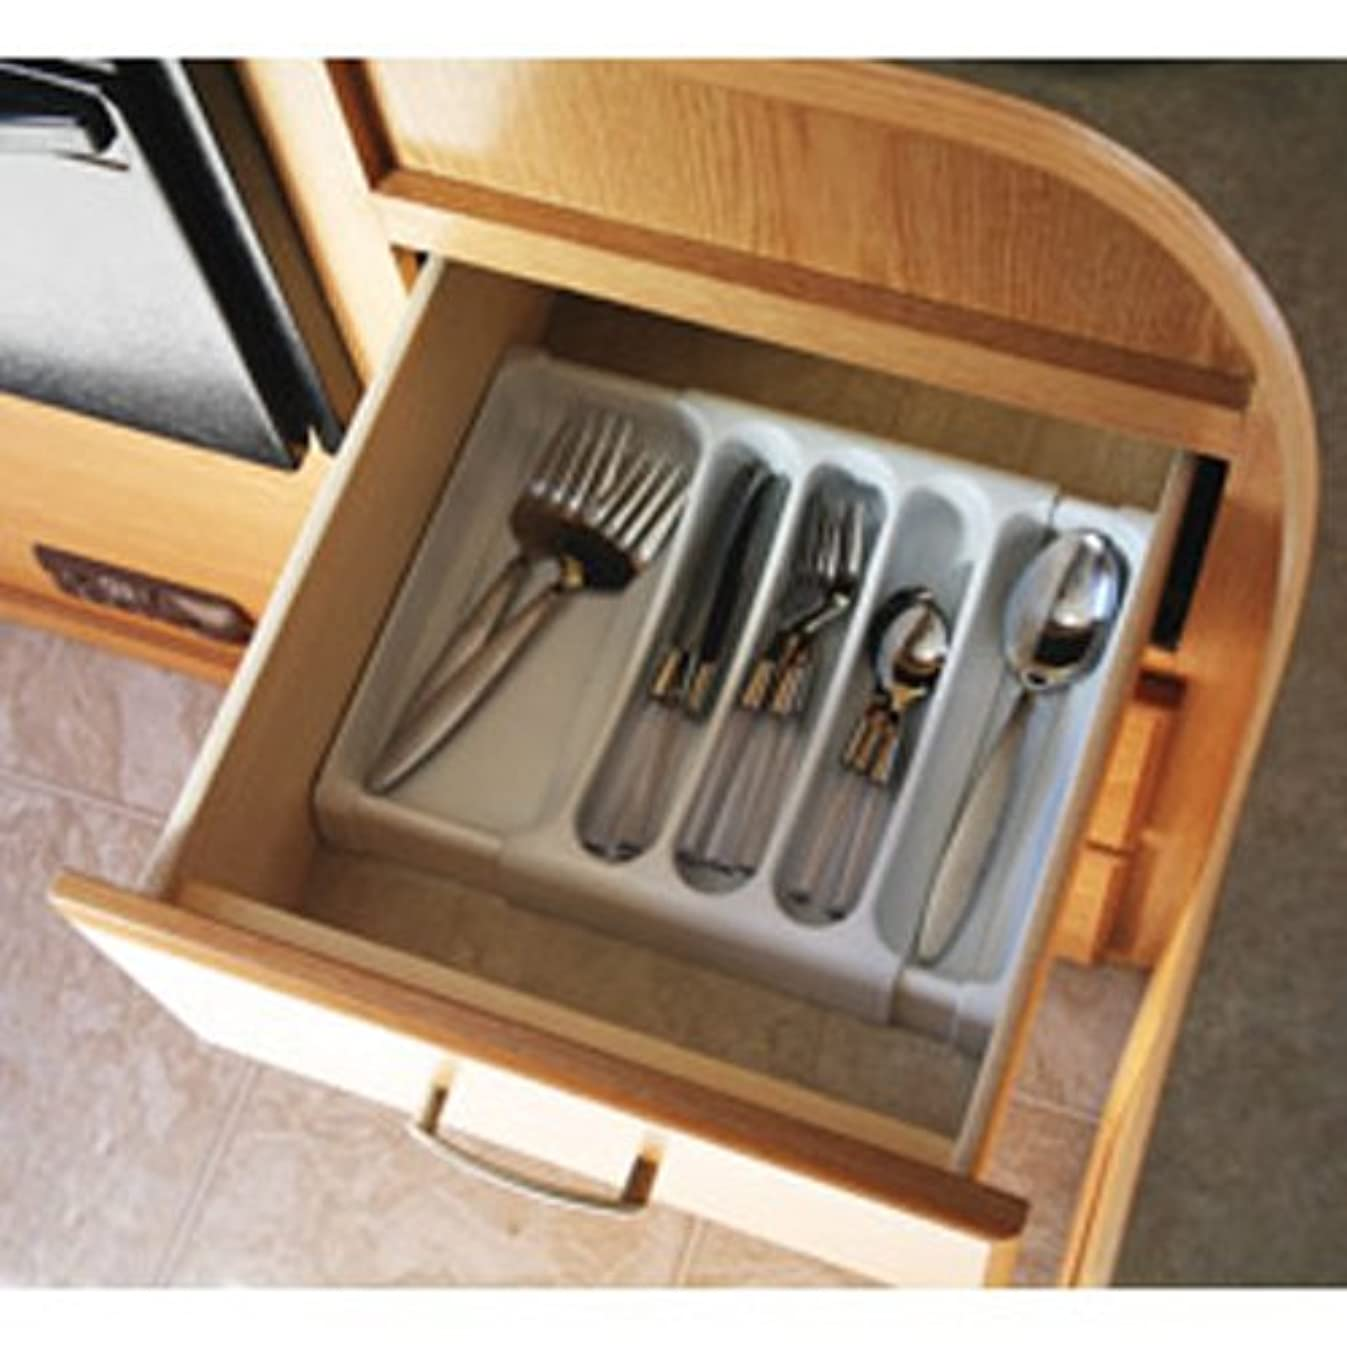 Camco Adjustable Cutlery Tray - Designed for RV and Compact Kitchen Drawers , Adjusts between 9